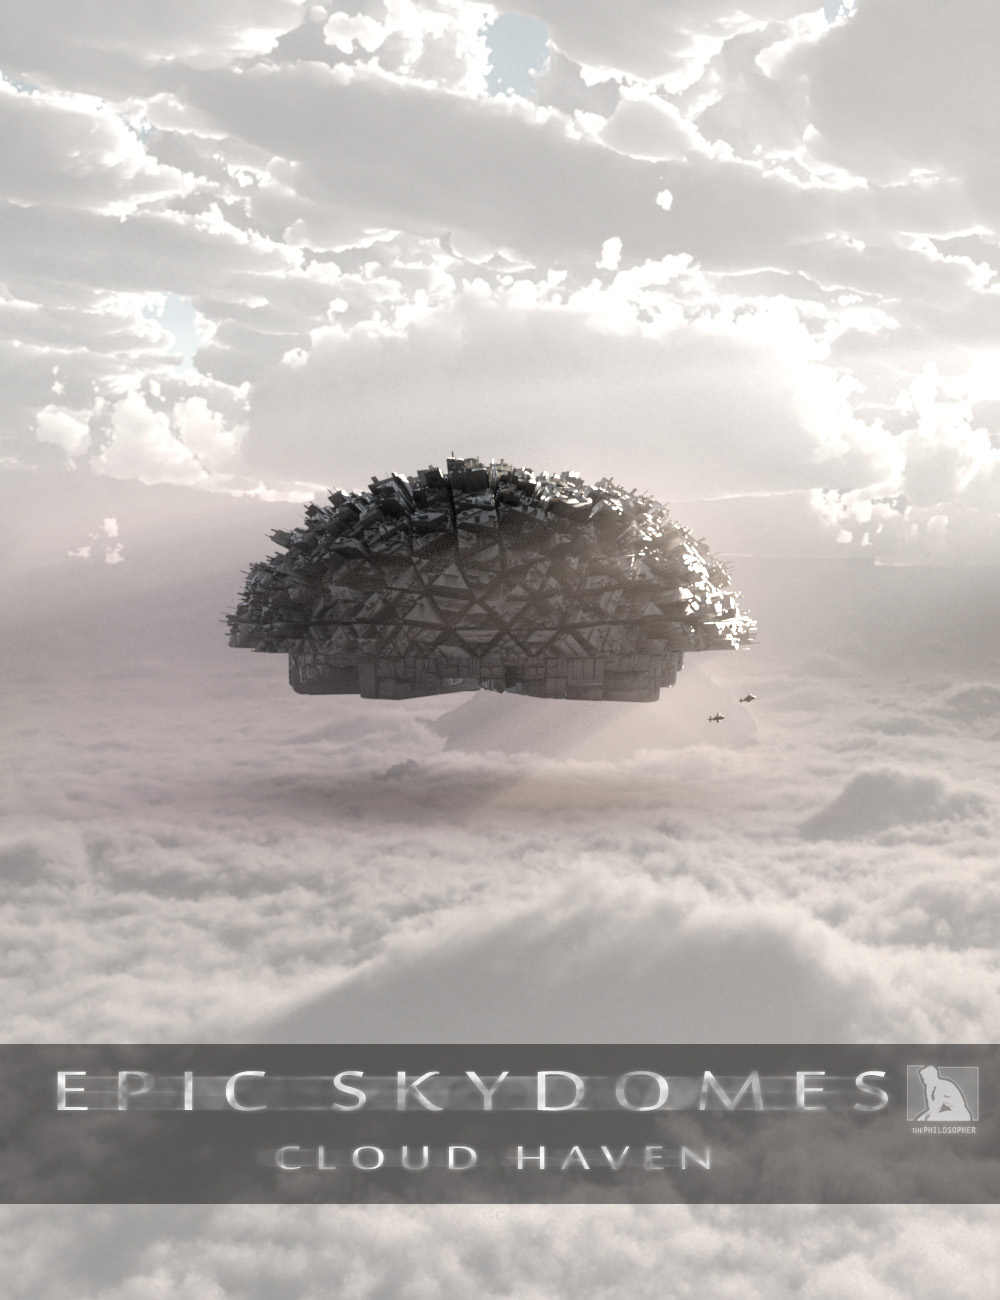 Epic Skydomes: Cloud Haven HDRI by: ThePhilosopher, 3D Models by Daz 3D